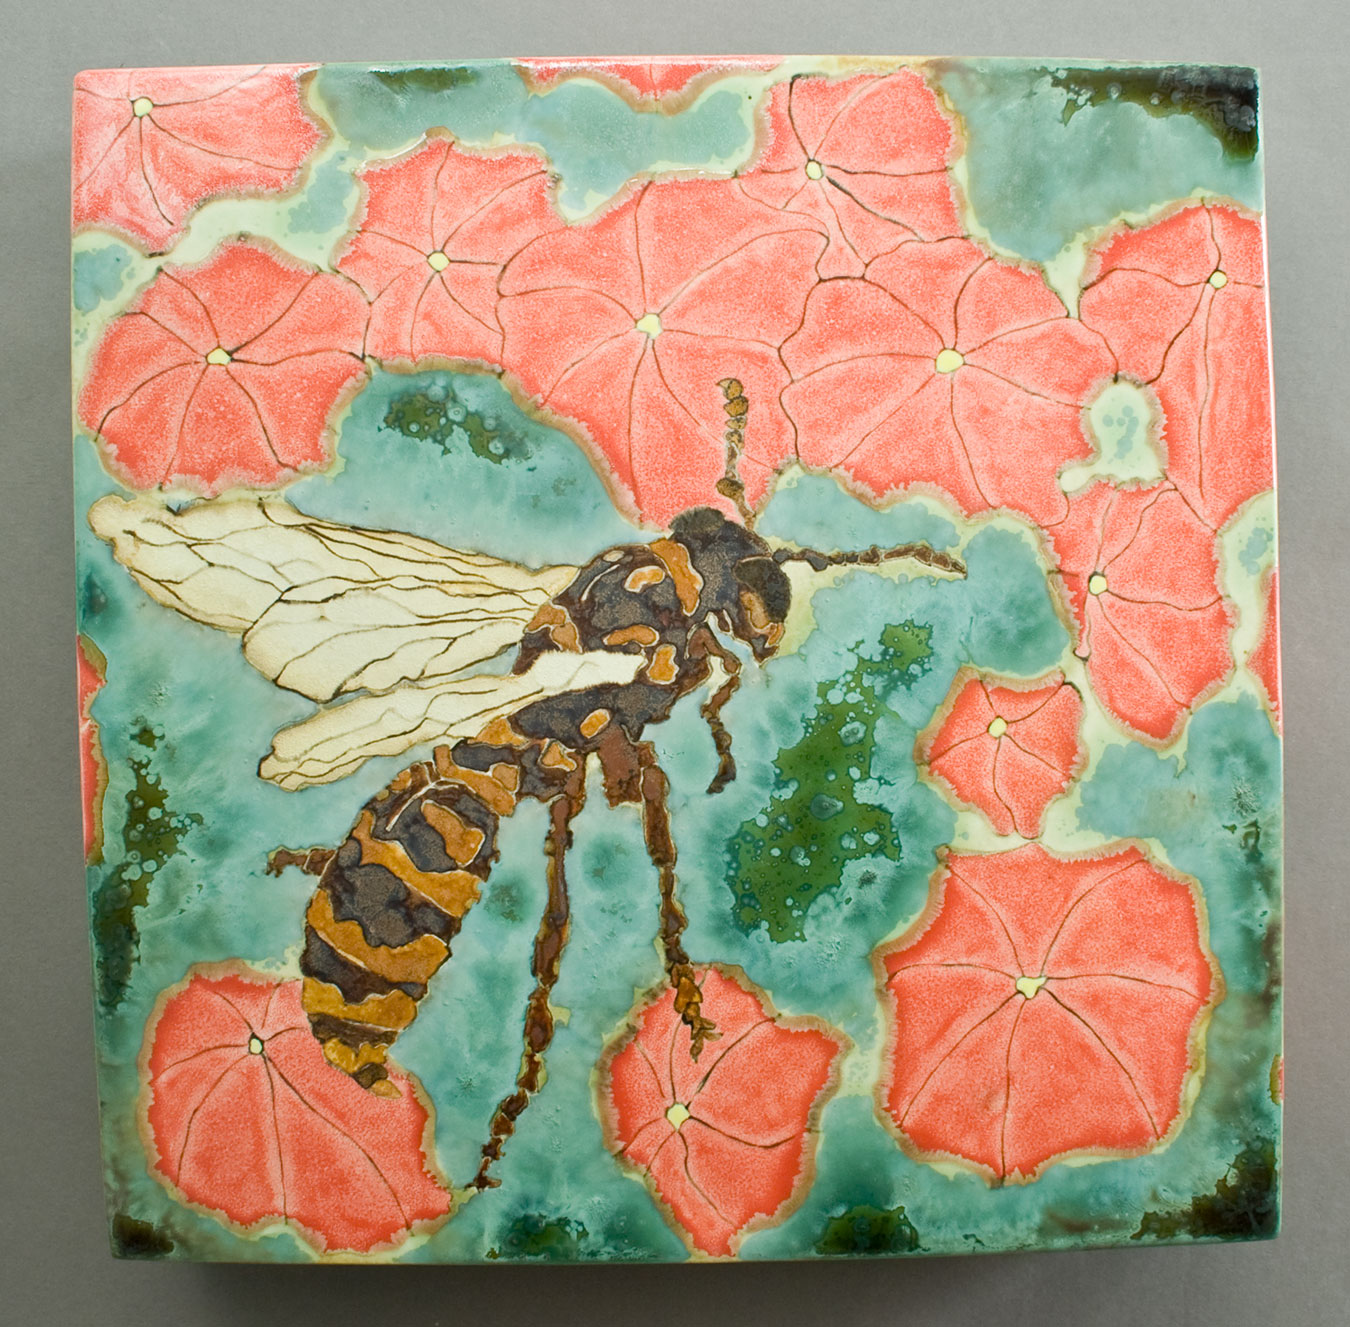 Wasp-and-Nasturiums-Ceramic-Art-Glaze-Painting-Samantha-Henneke.jpg